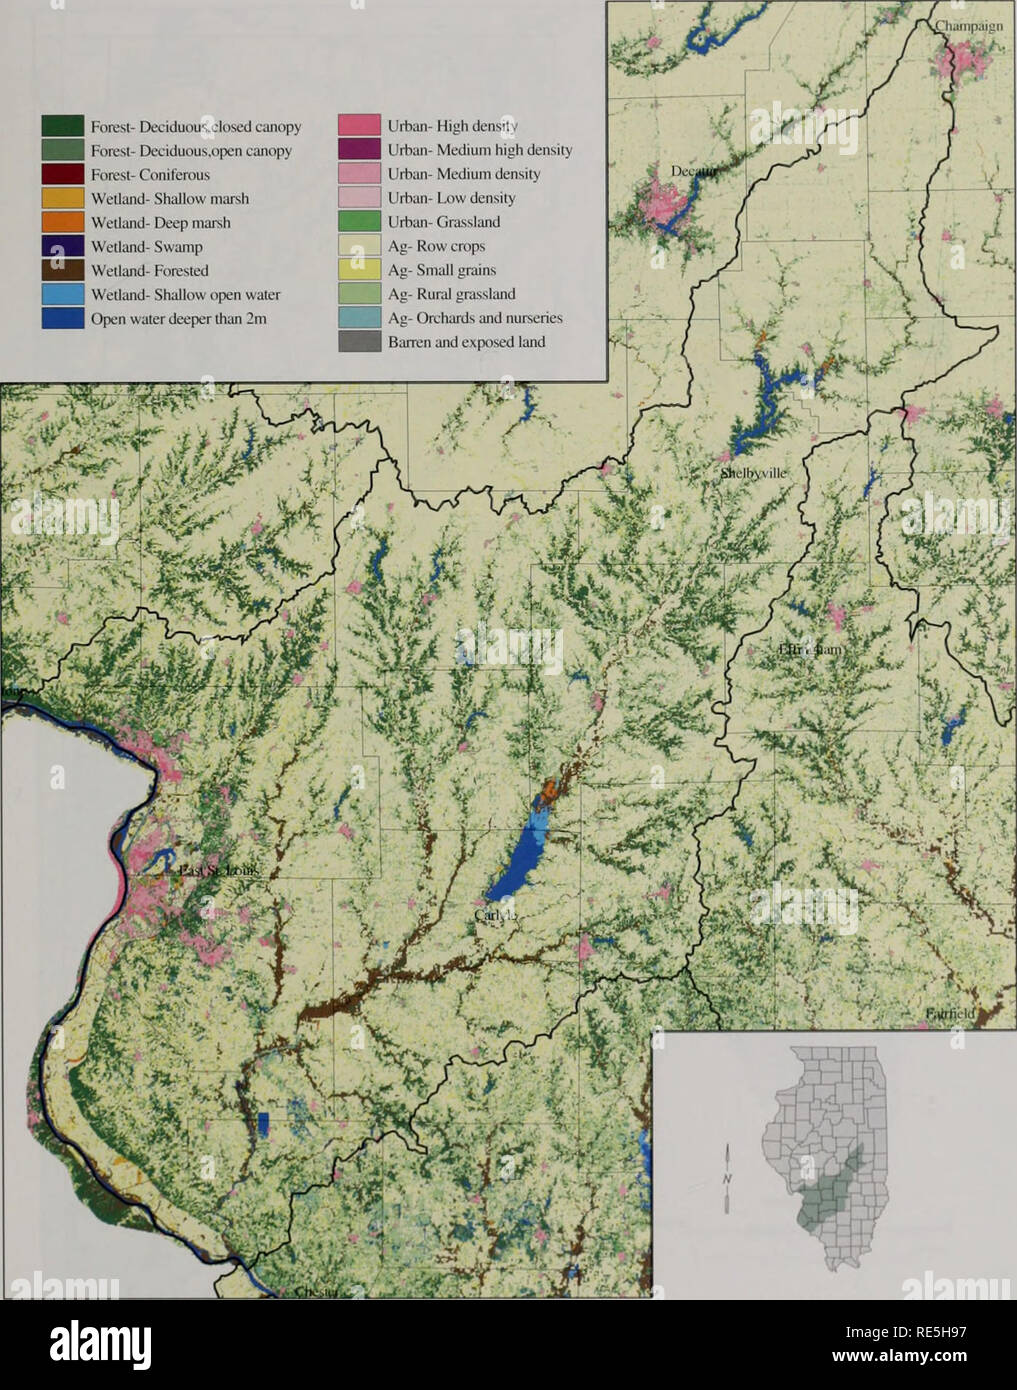 Critical trends in Illinois ecosystems. Ecological ...